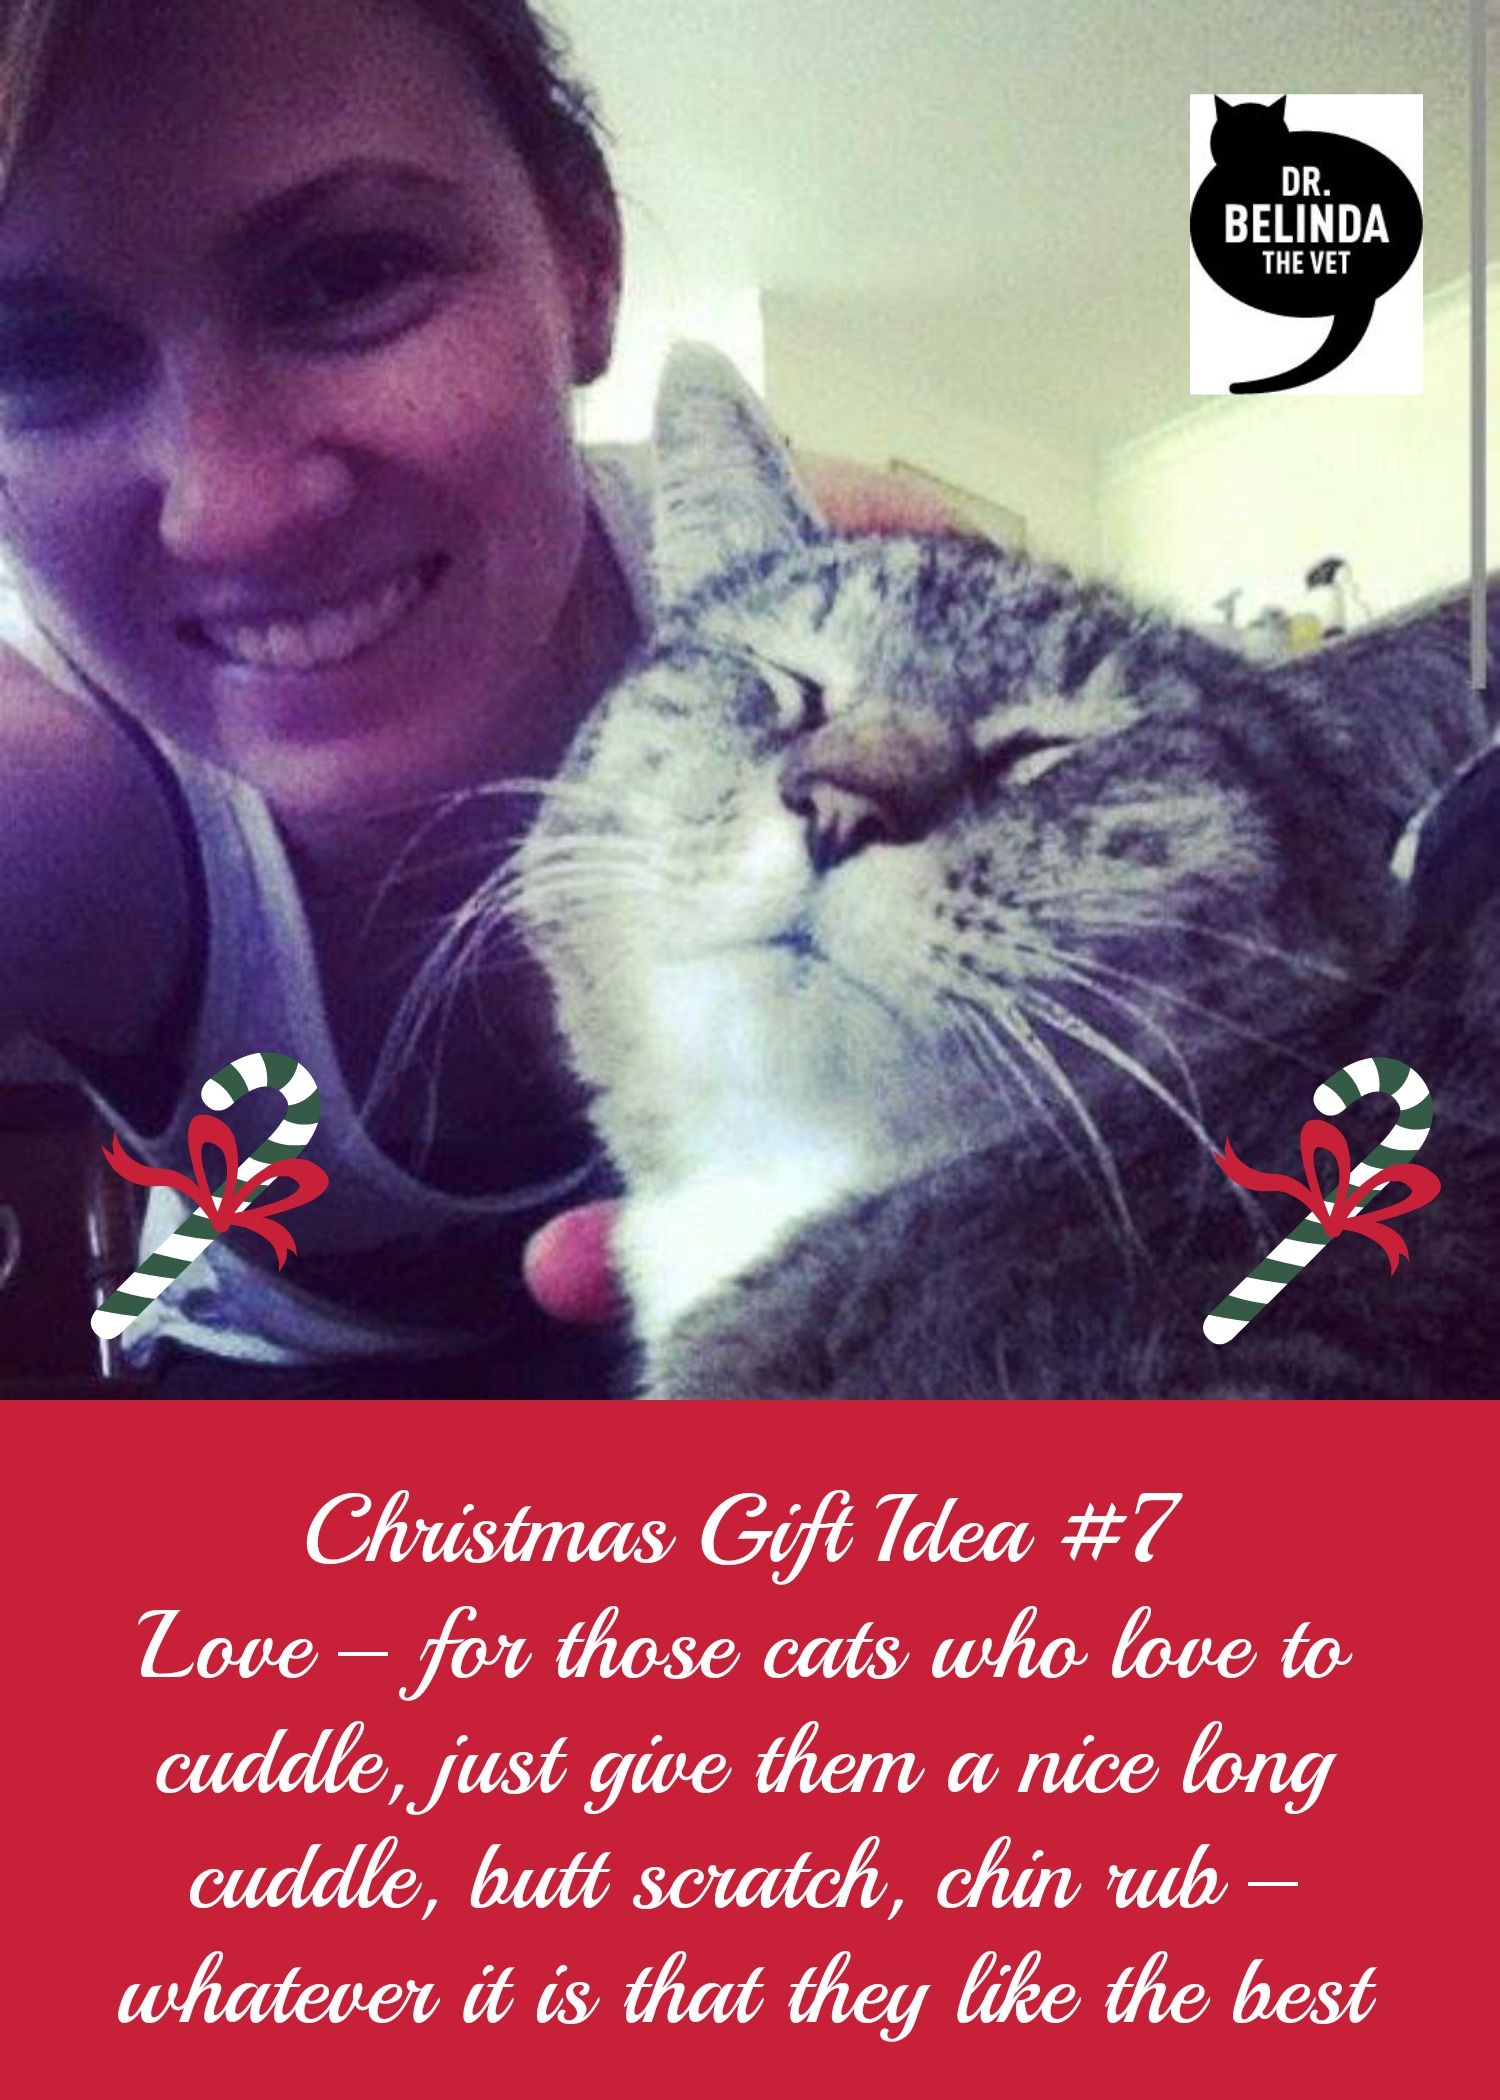 12 Christmas Gift Ideas For Your Cat Dr Belinda The Vet Christmas Gifts Cats Cat Gifts